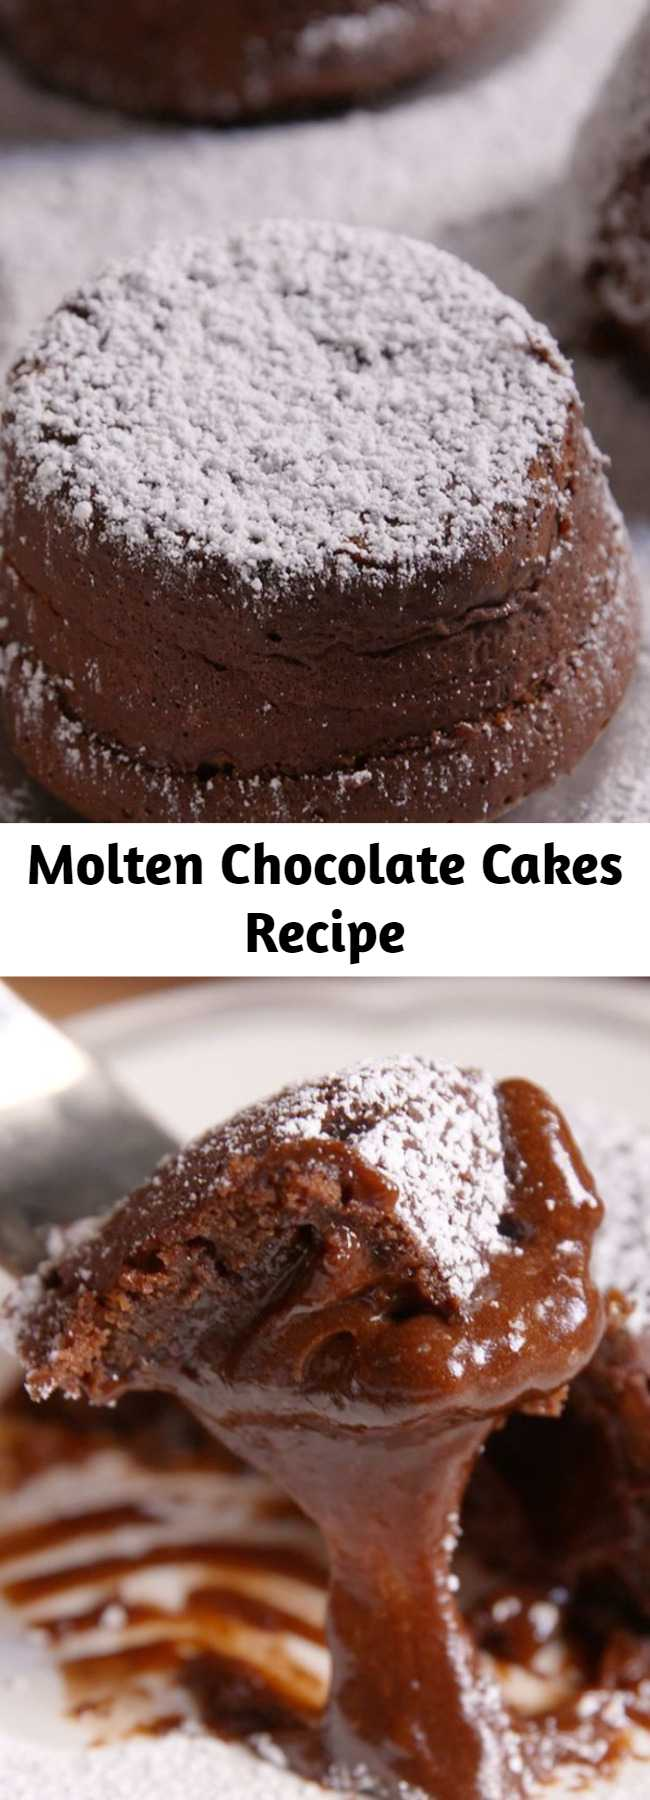 Molten Chocolate Cakes Recipe - Sure, chocolate cake is great. But MOLTEN chocolate cake? For chocolate lovers, this one is the ultimate. Now you don't have to go out to a fancy restaurant for molten chocolate cakes.